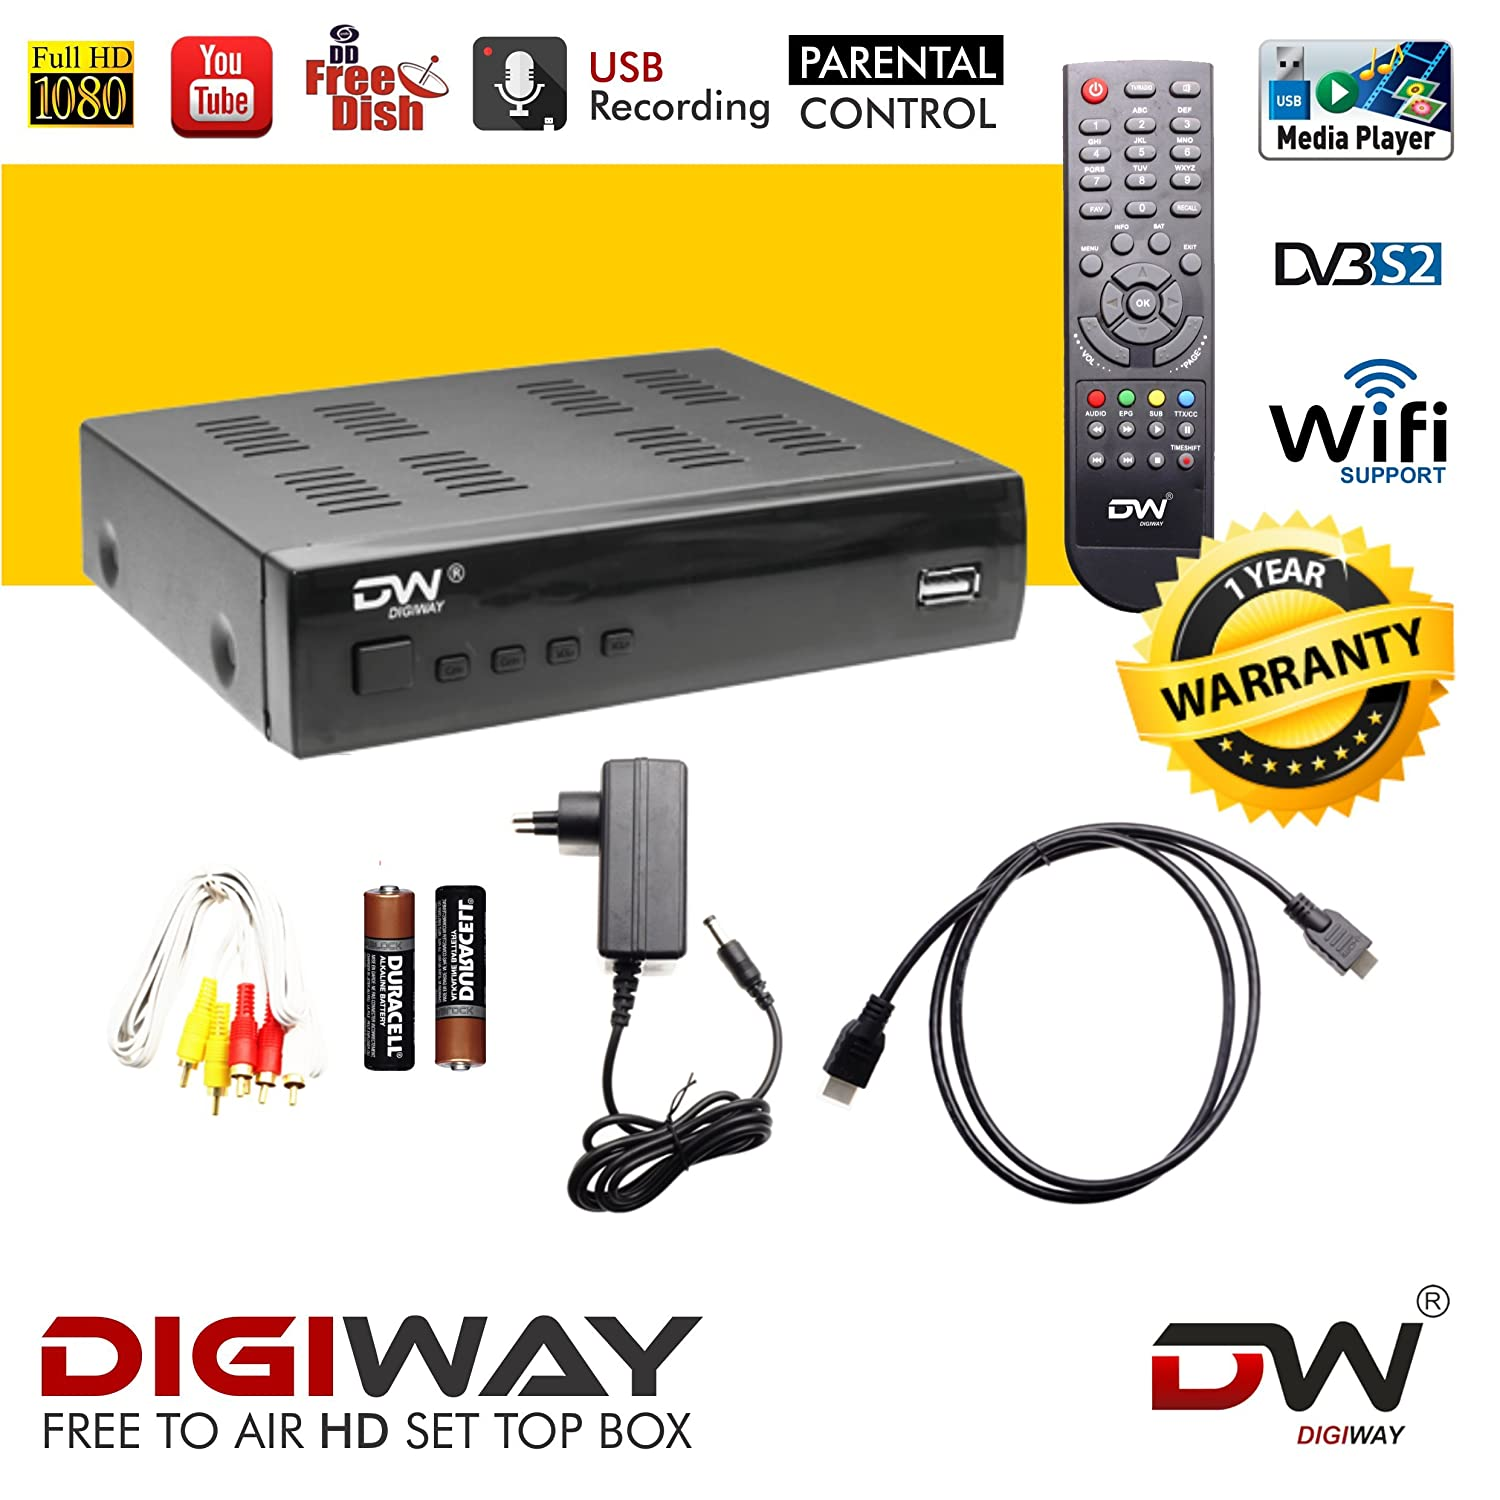 DIGIWAY Free to Air DD Direct DTH Set Top Box with HDMI Cable(DVB-S2,  Mpeg-4, Full HD with 2 USB Ports and Wi-Fi Dongle Supported)